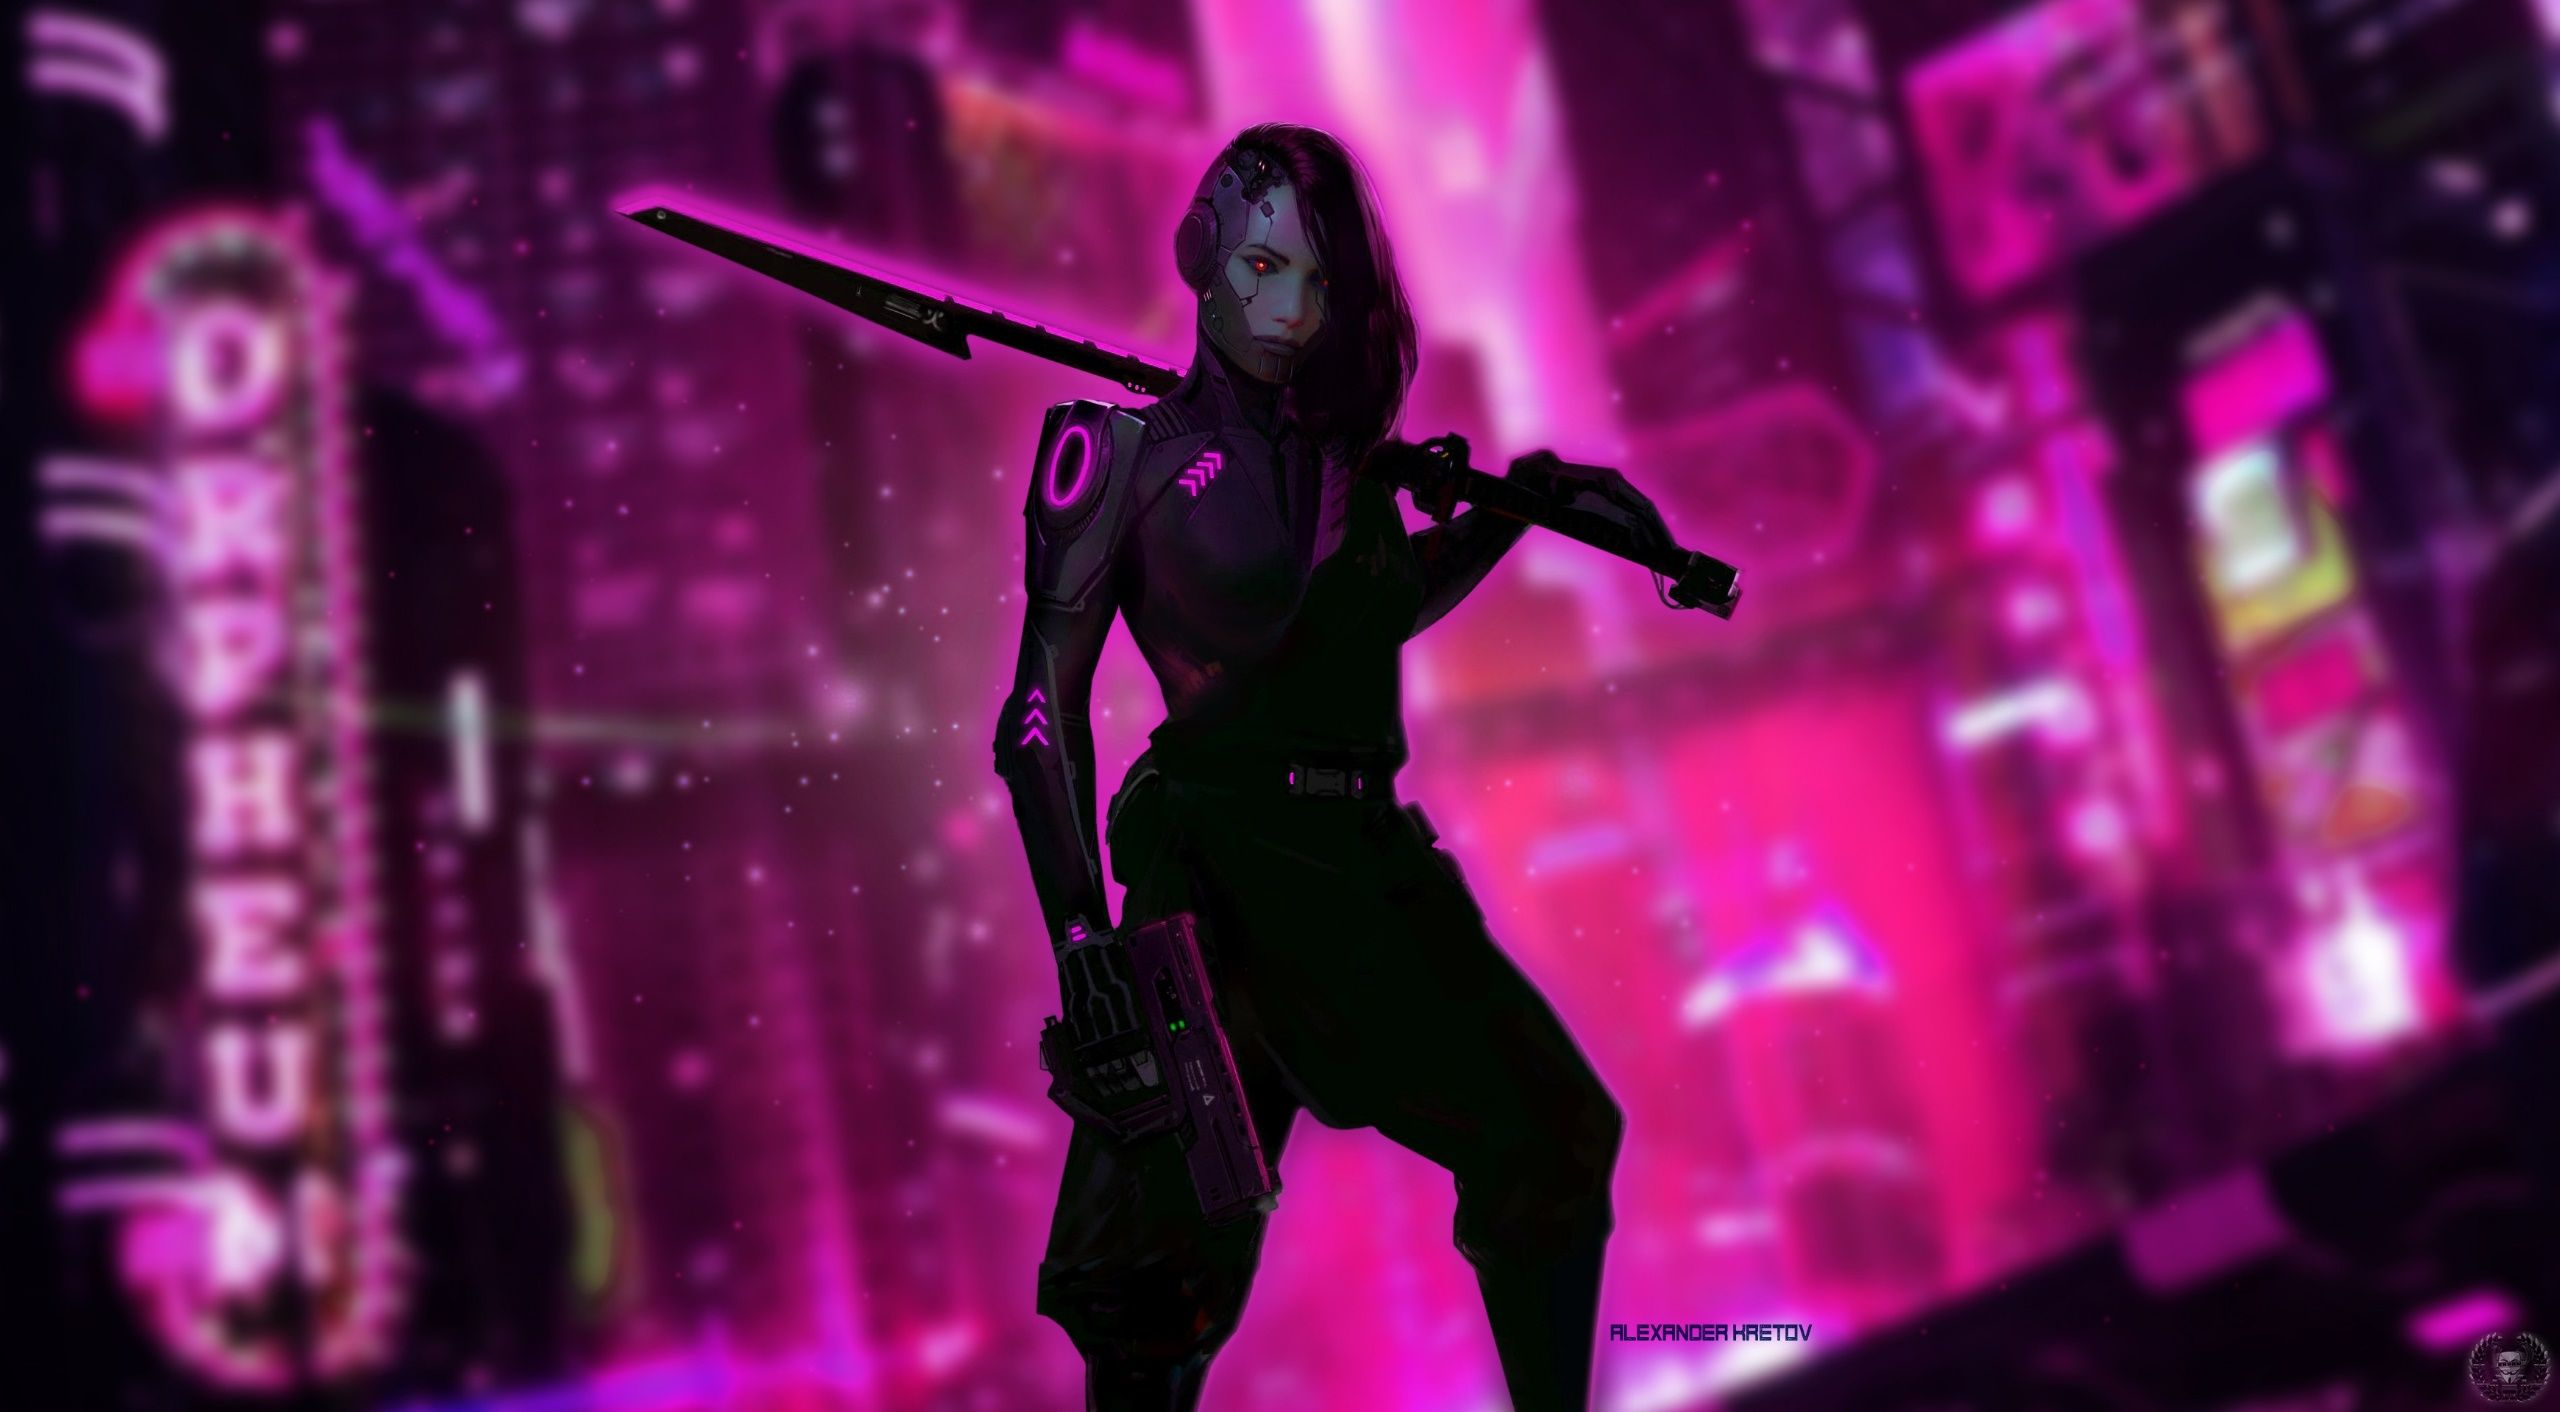 Cyberpunk Woman Wallpapers Top Free Cyberpunk Woman Backgrounds Wallpaperaccess